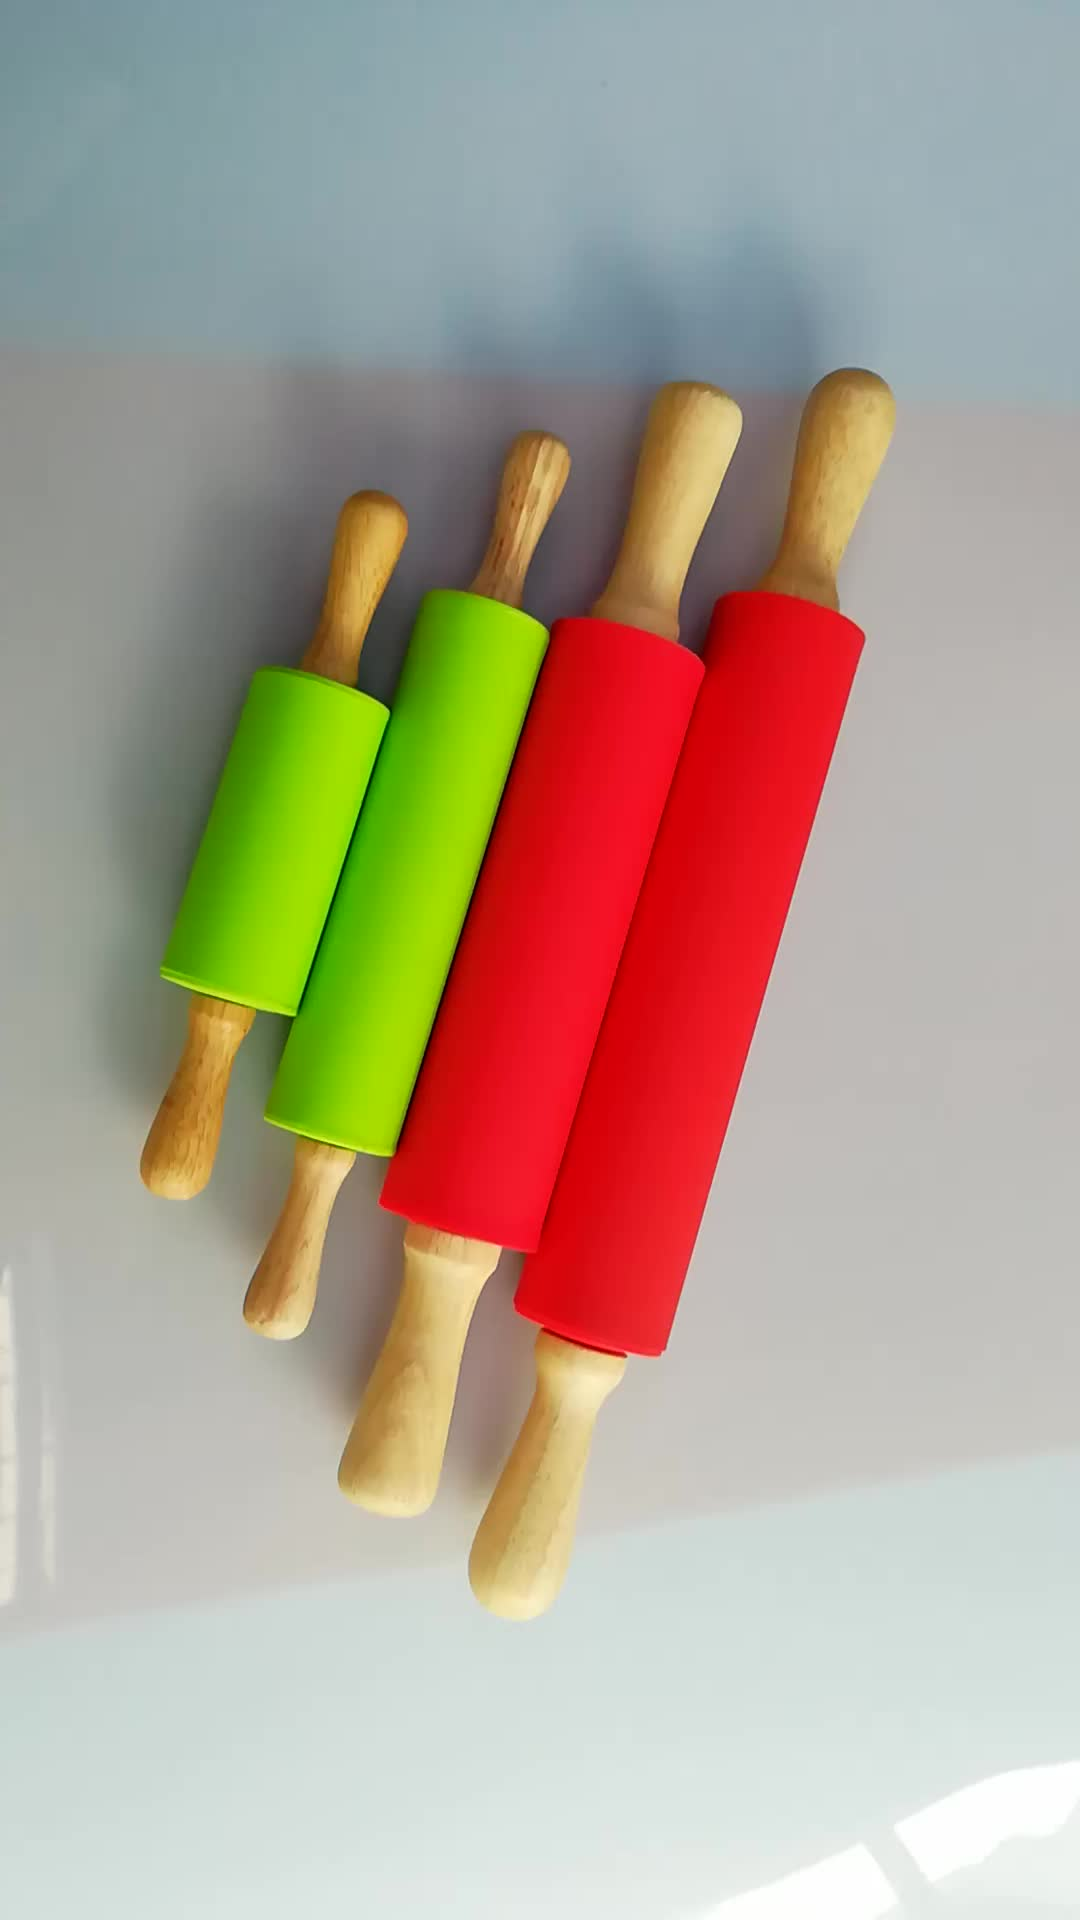 Factory wholesale easy using silicone rolling pin with wood handle,Happy kitchen wooden rolling pin